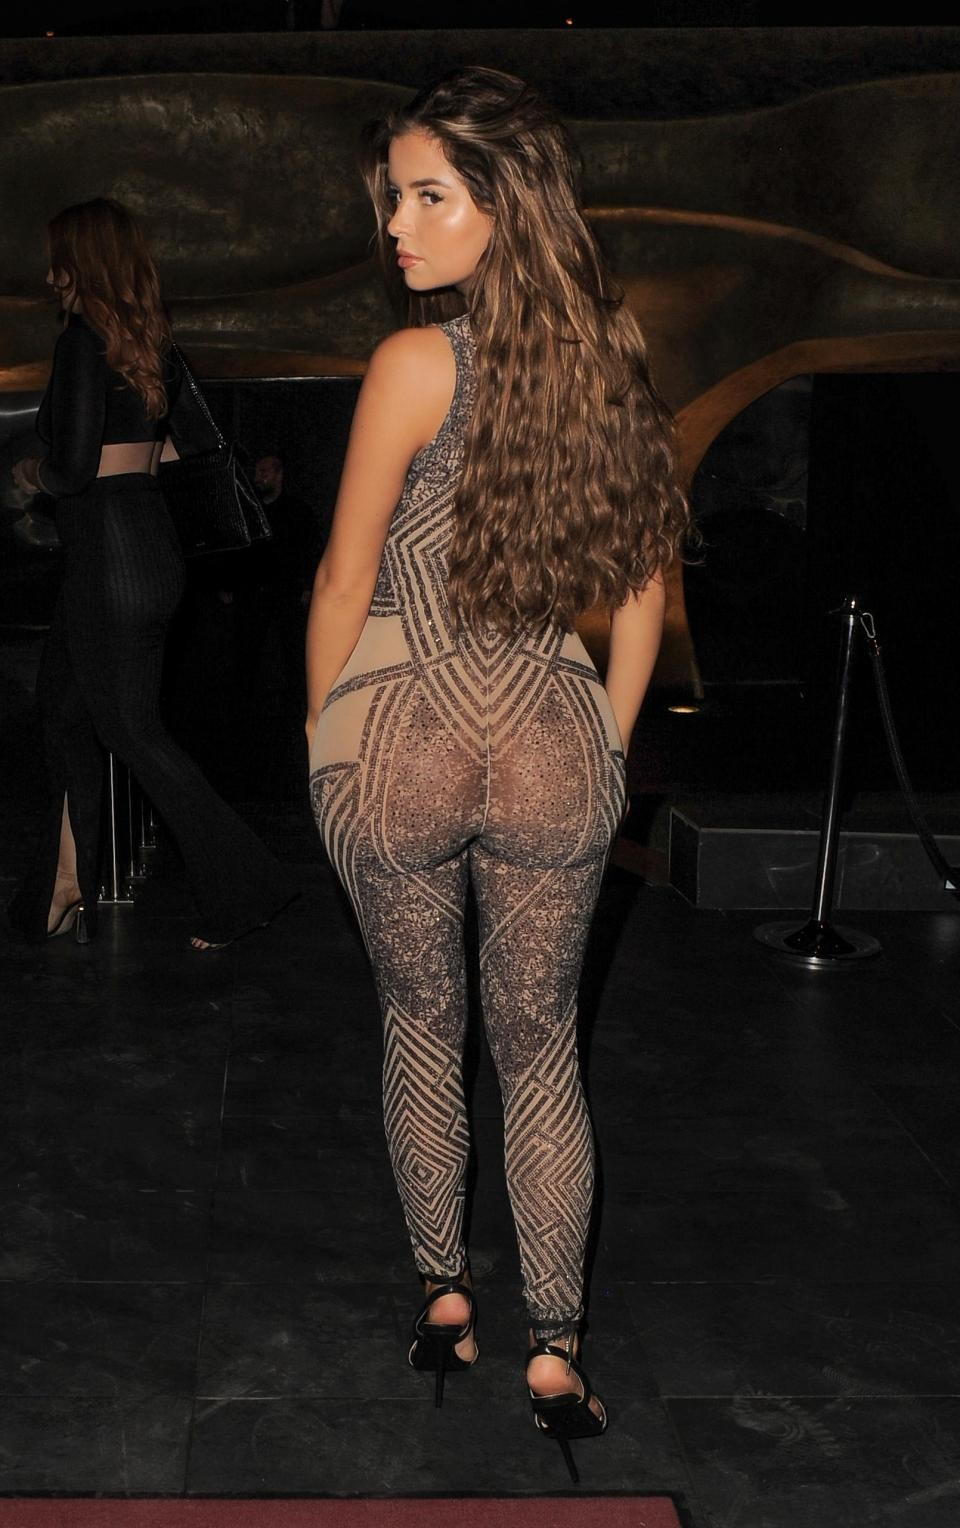 Demi Rose goes braless in see-through skintight catsuit (photos)